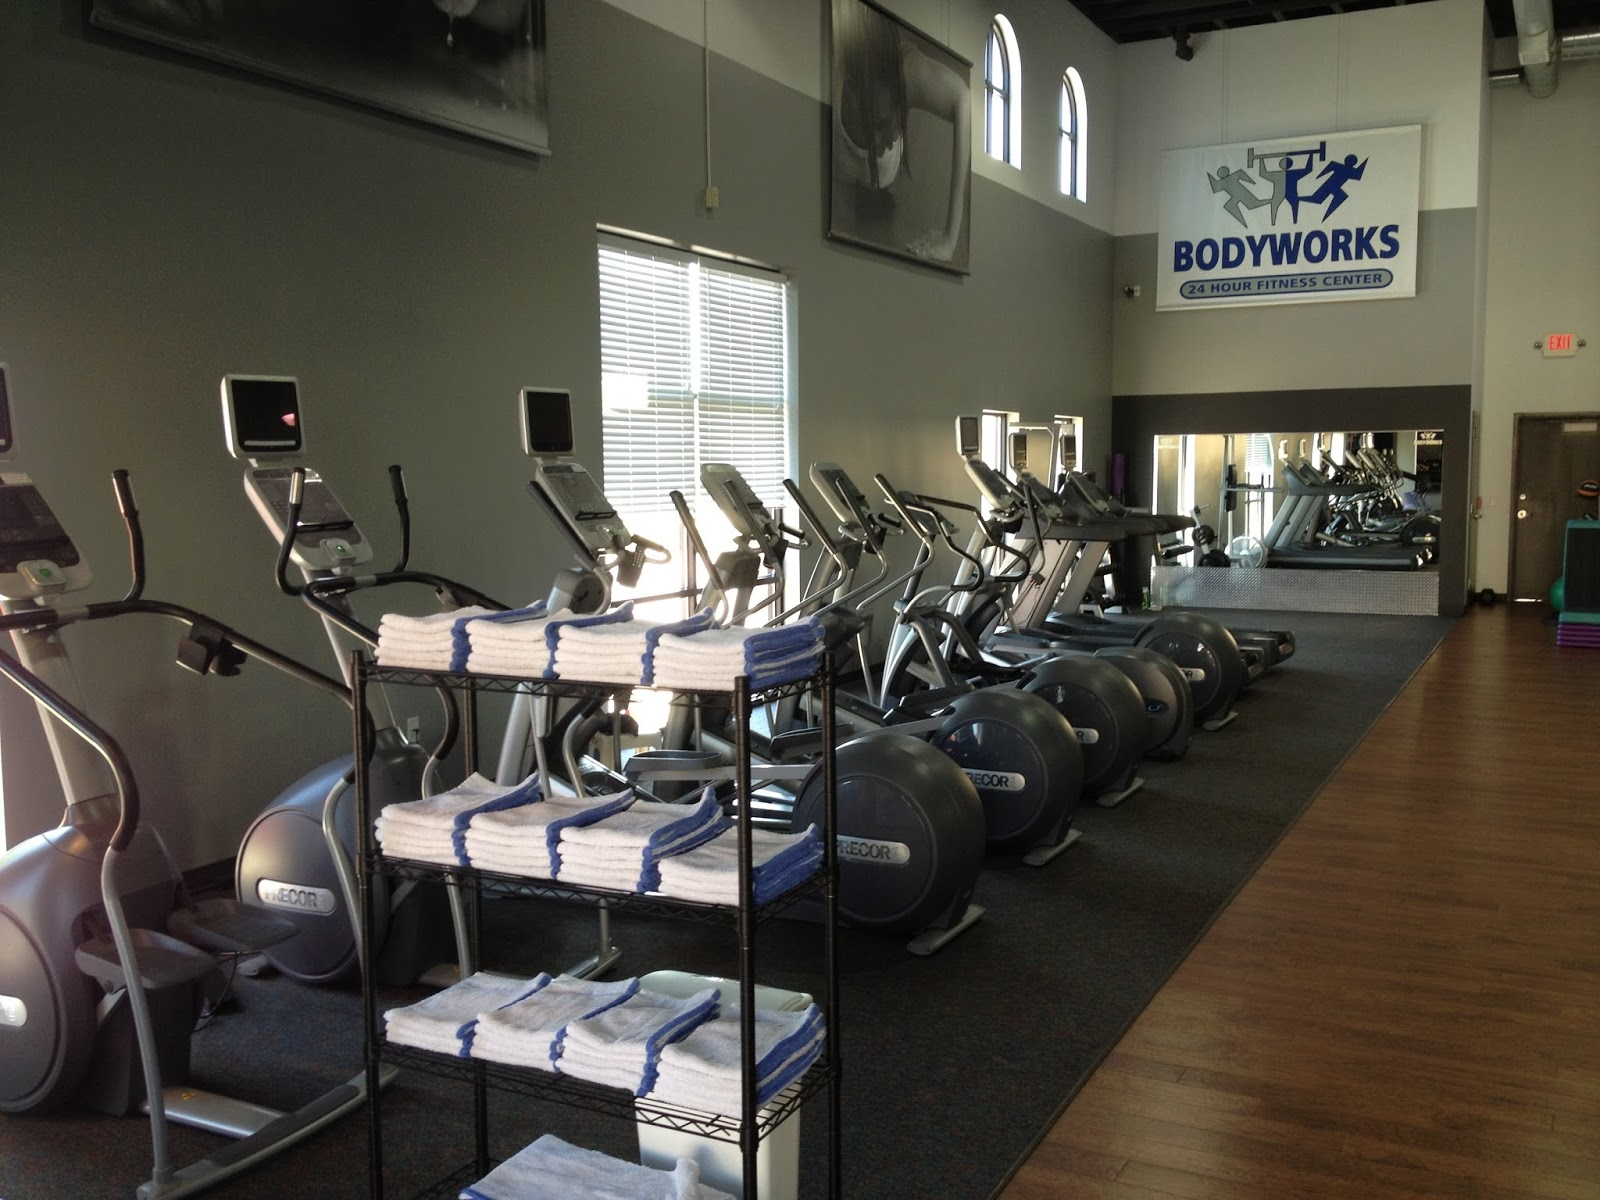 Bodyworks Fitness Center - photo